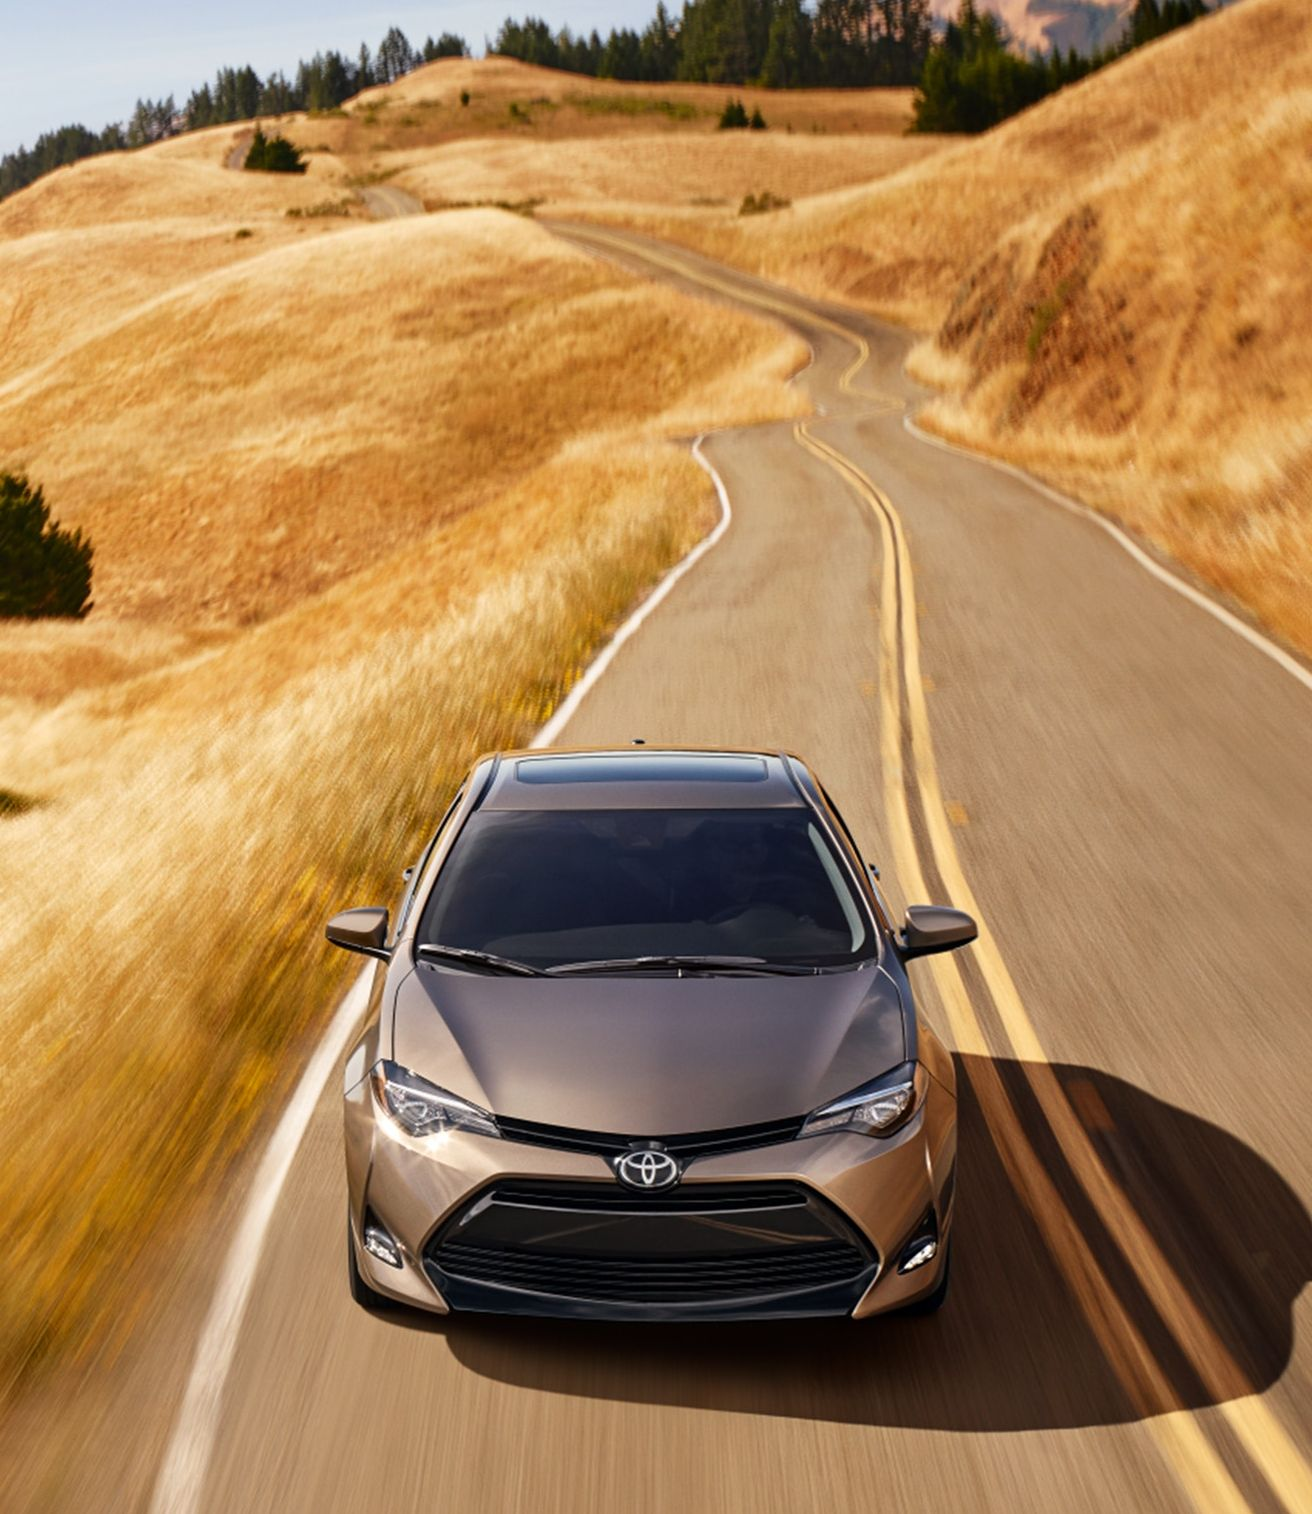 2019 Toyota Corolla Leasing in Newark, DE